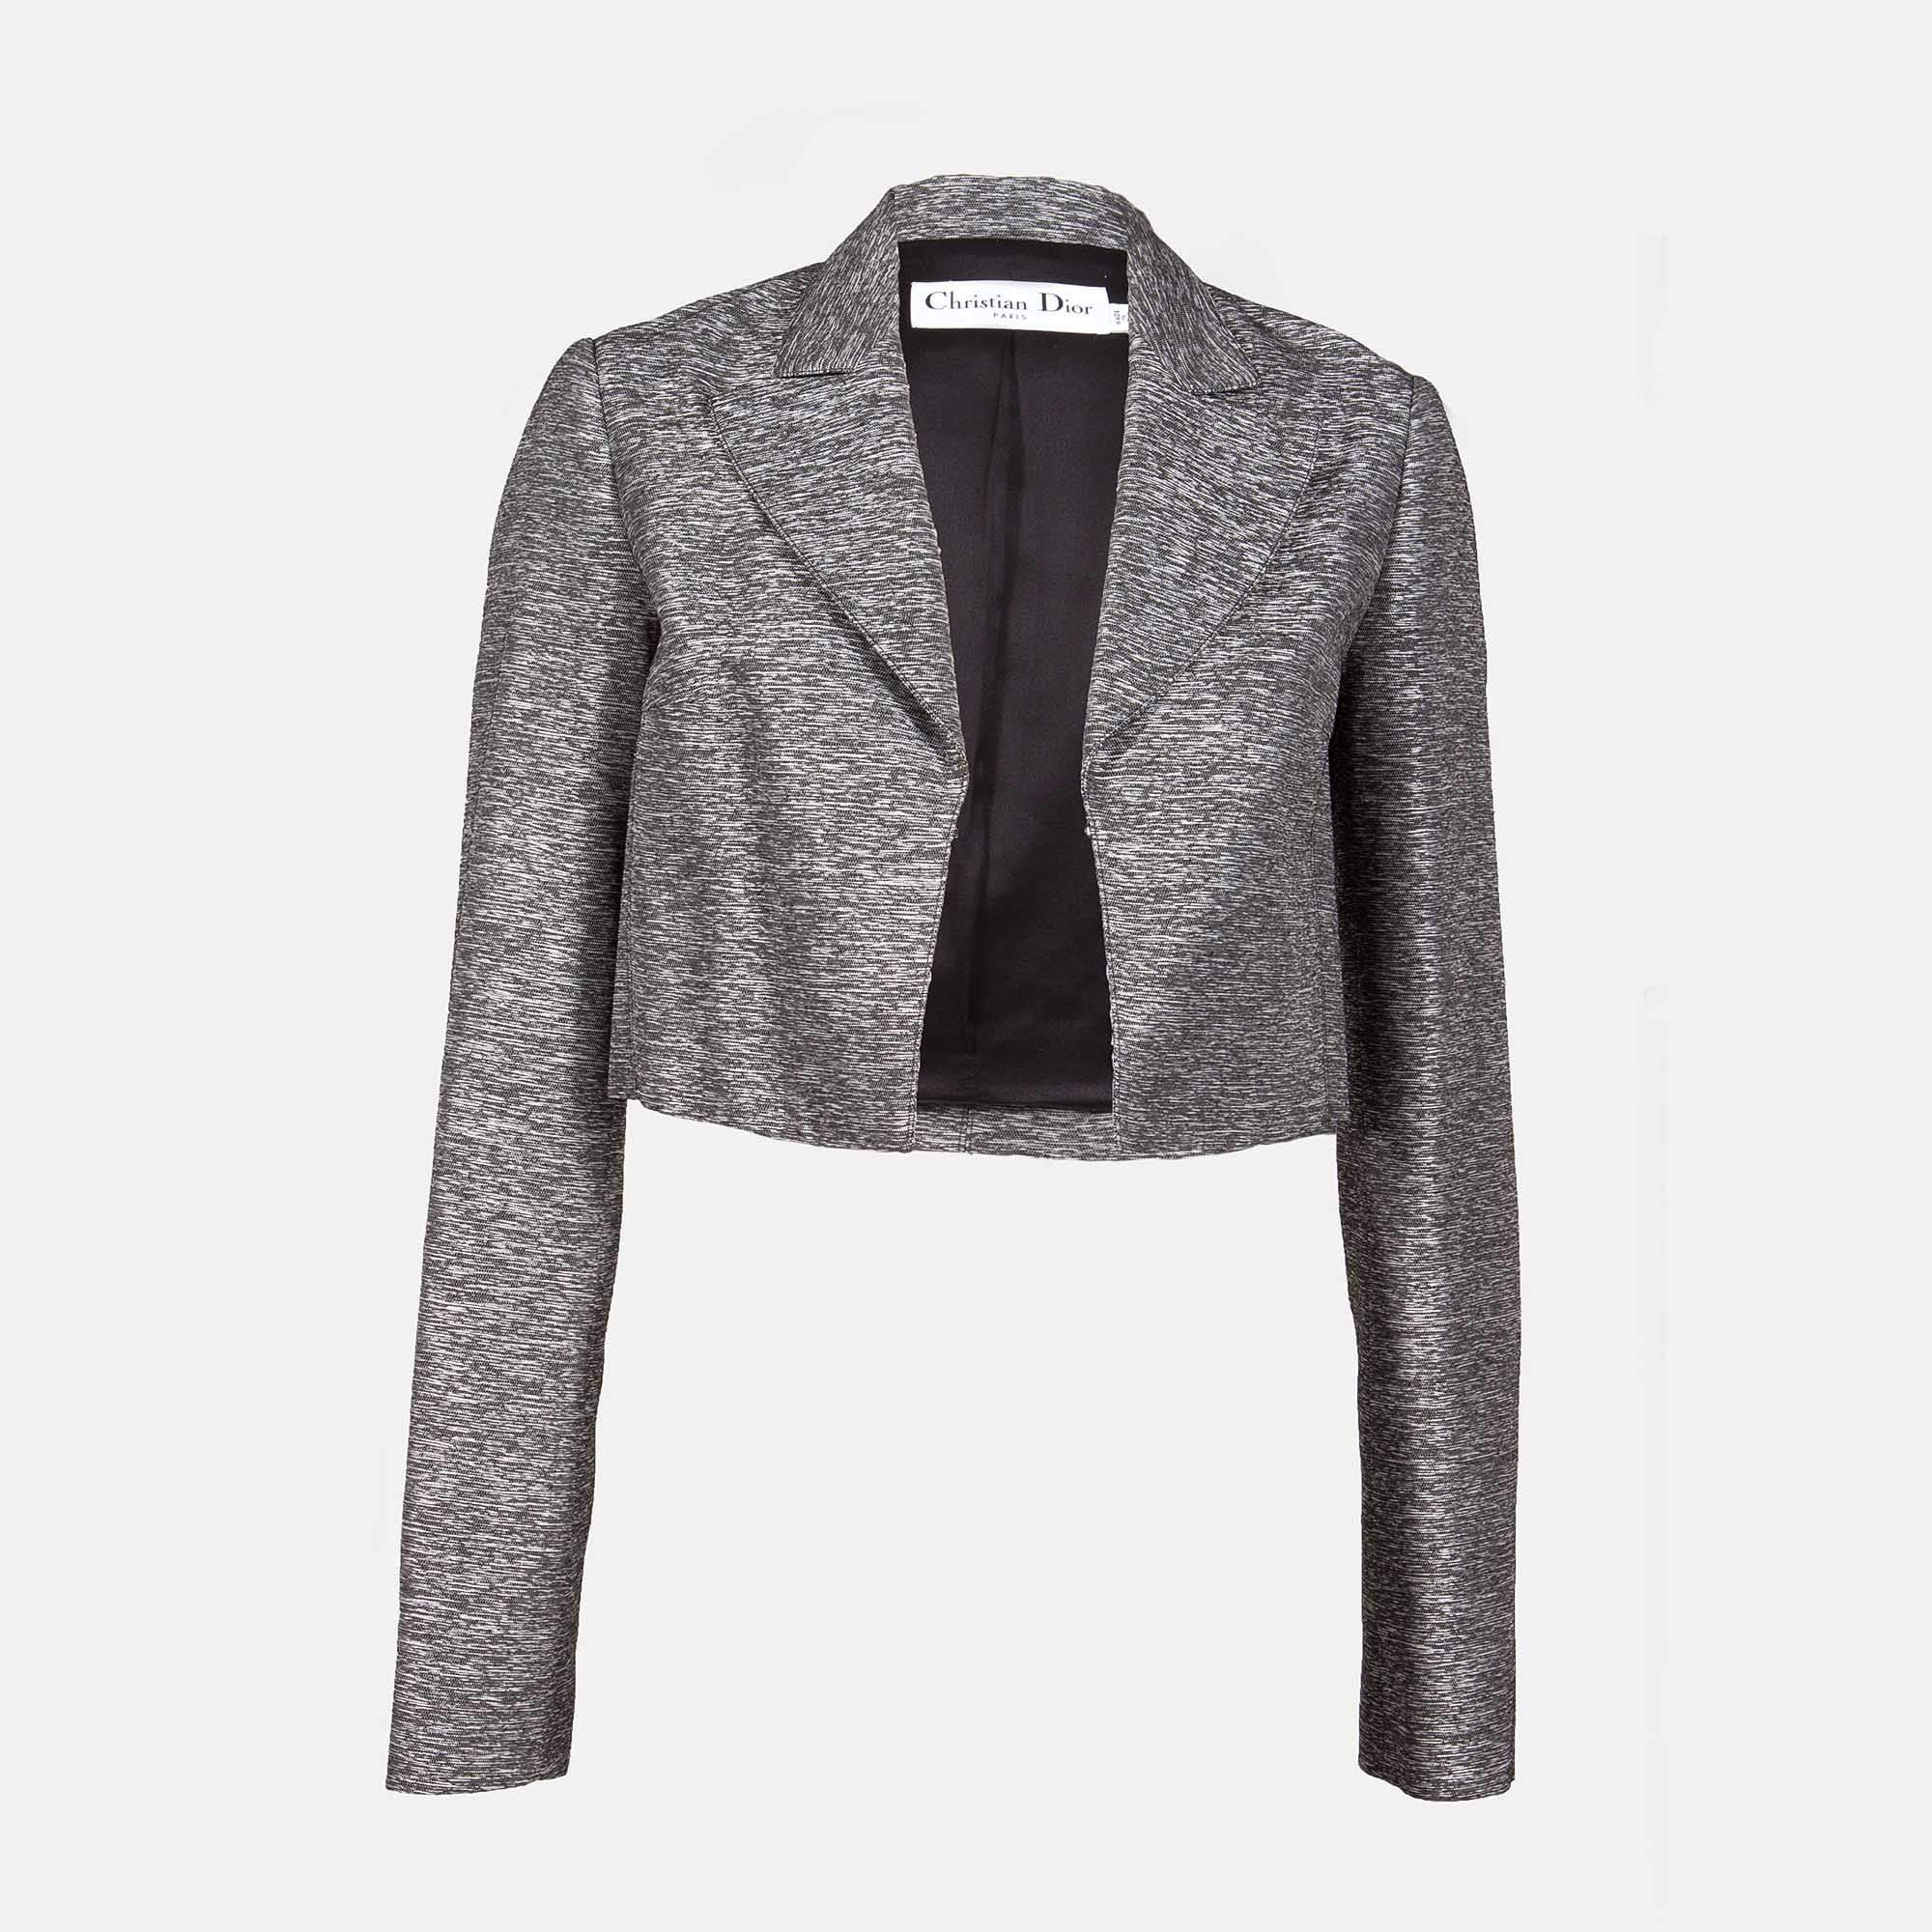 Christian Dior Crop Jacket